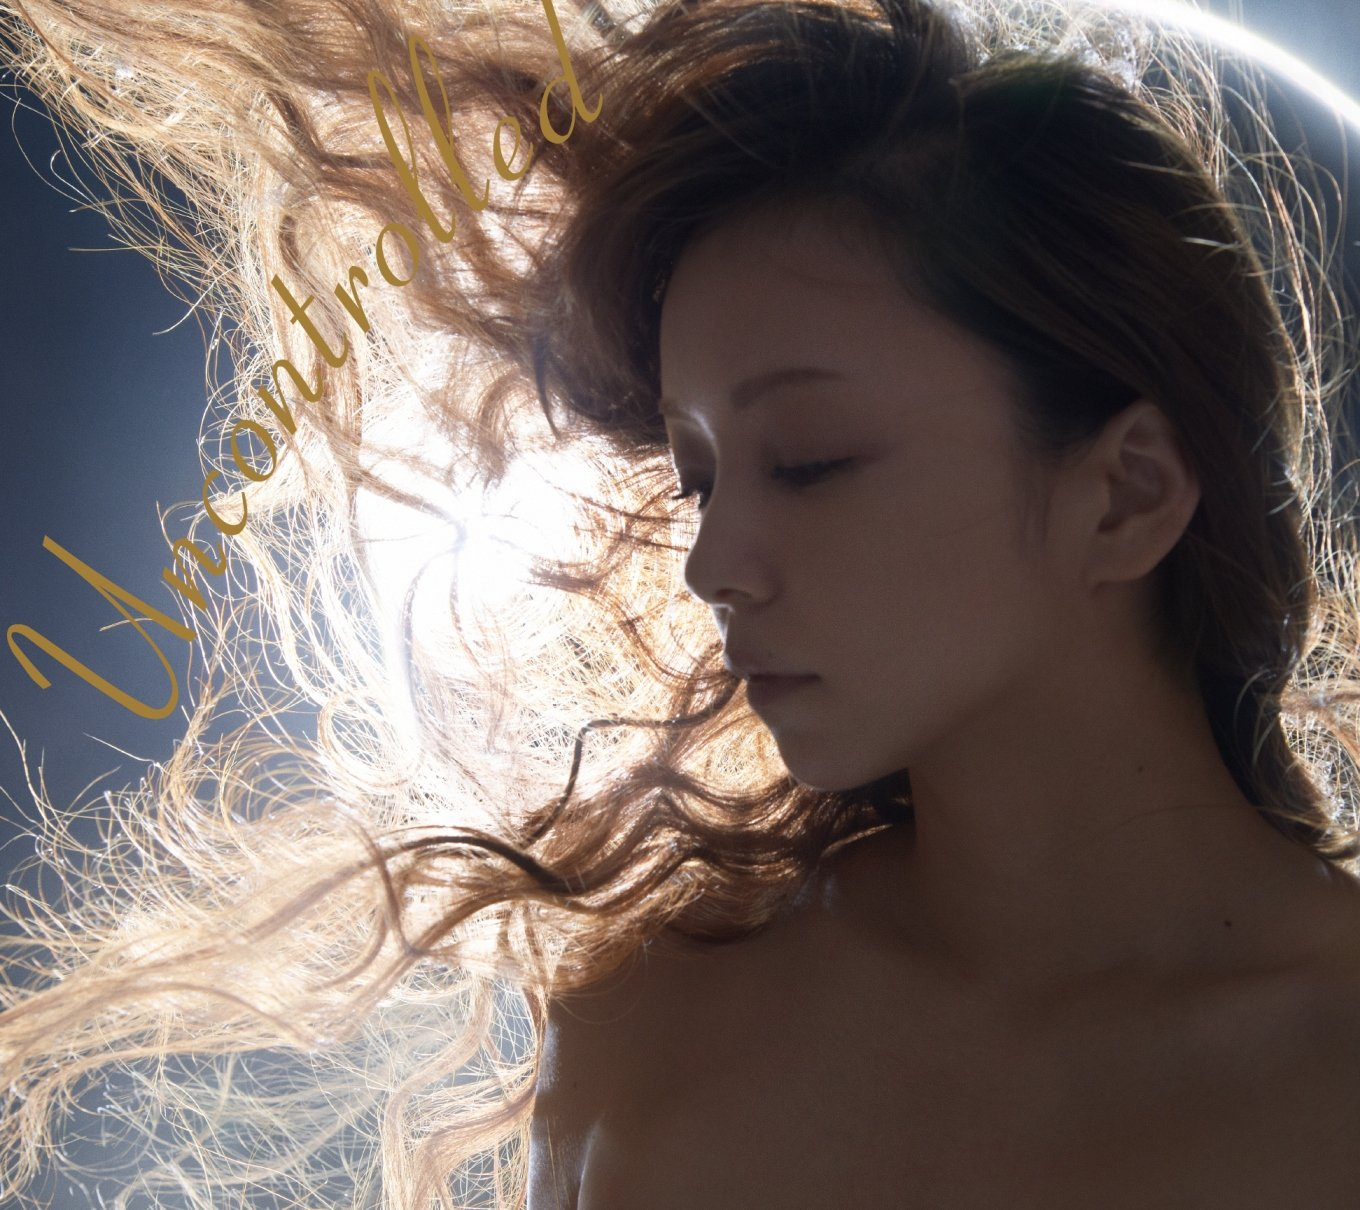 Namie_Amuro_-_Uncontroled_%28CD_Only%29.